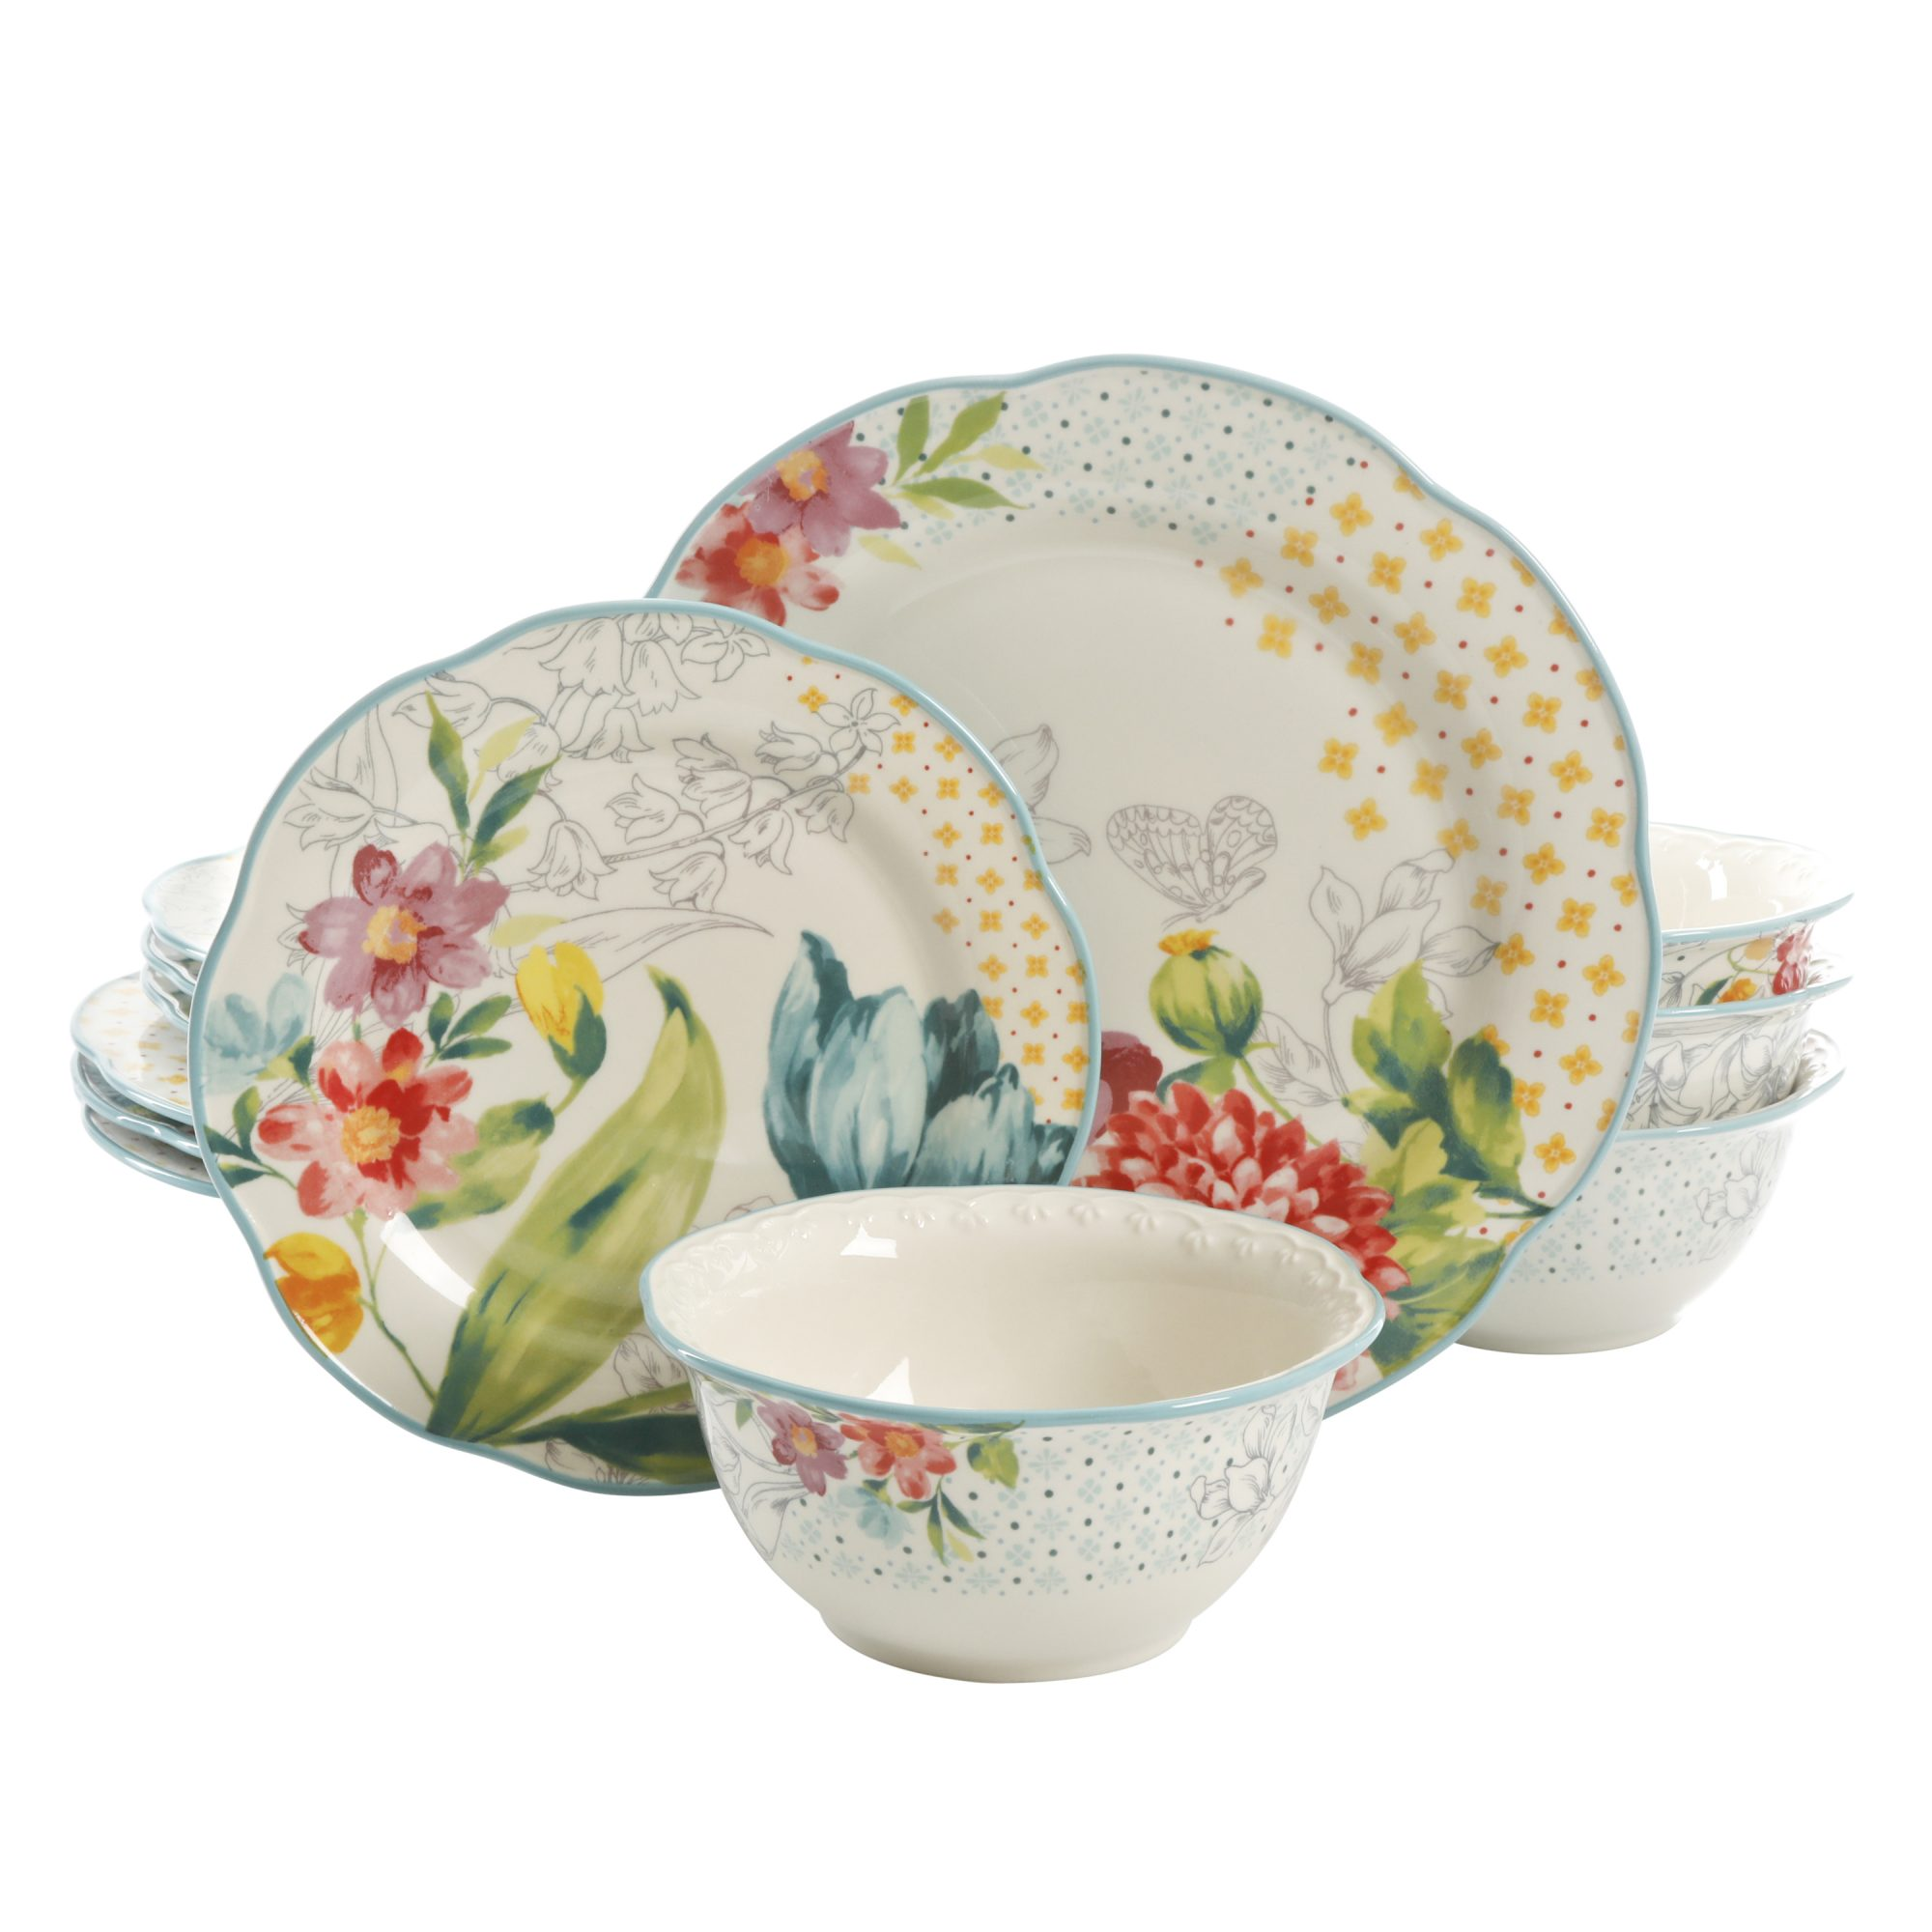 plates and bowls with a floral pattern